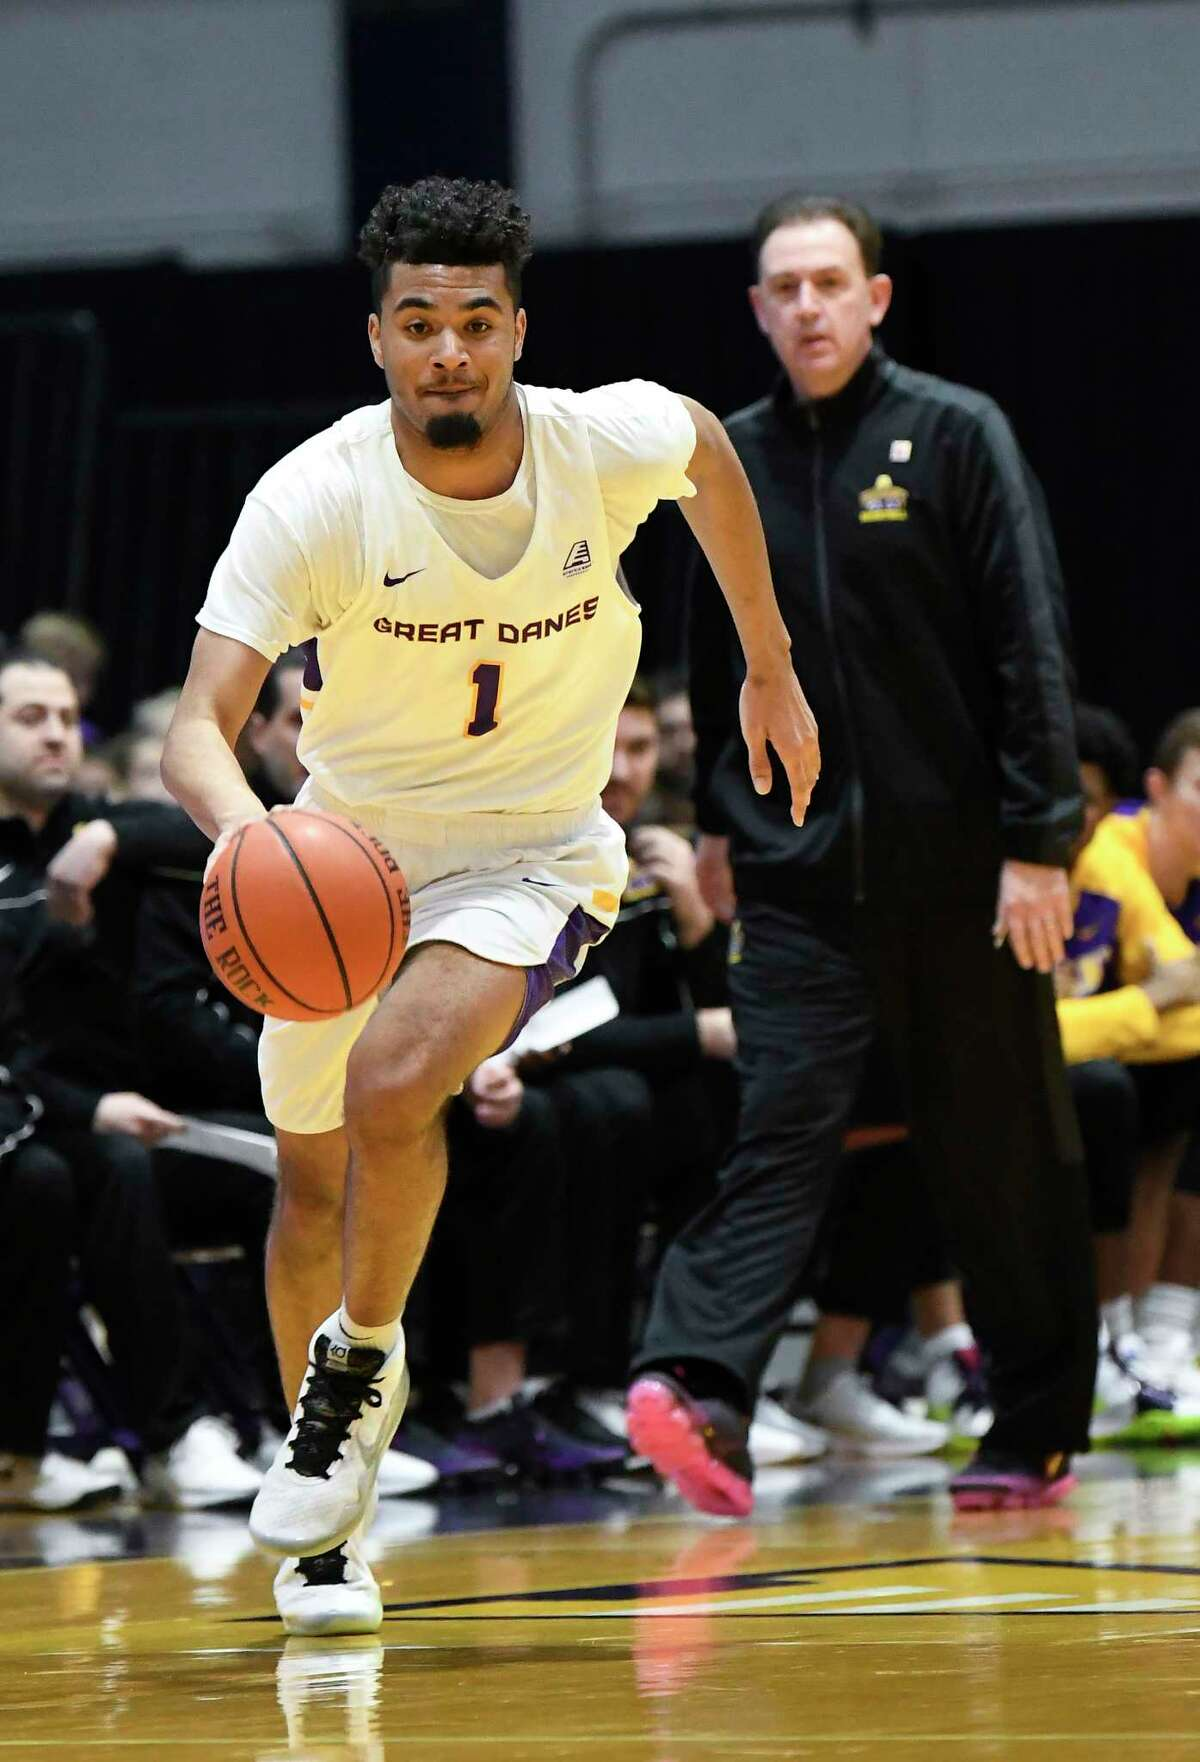 University at Albany guard Malachi De Sousa (1) moves the ball against Maine during the first half of an NCAA basketball game Saturday Jan. 11, 2020, in Albany, N.Y.